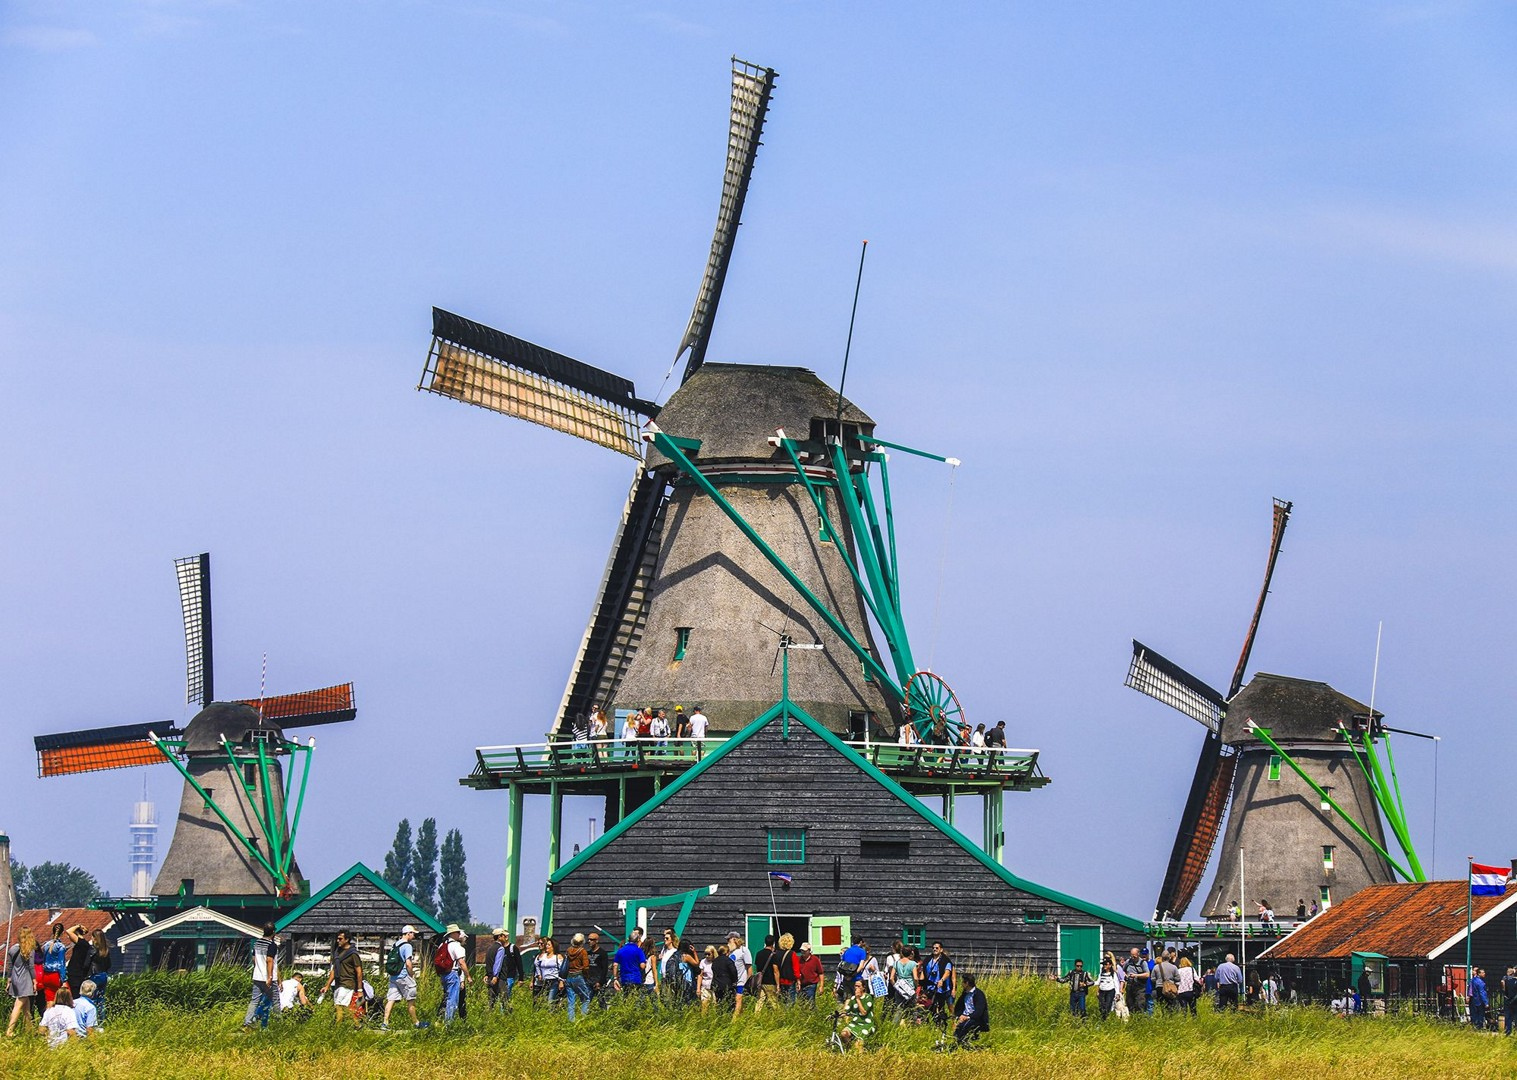 zaanse-schans-zaandam-holland-amsterdam-windmills-bike-and-barge.jpg - Holland and Belgium - Amsterdam to Bruges - Leisure Cycling